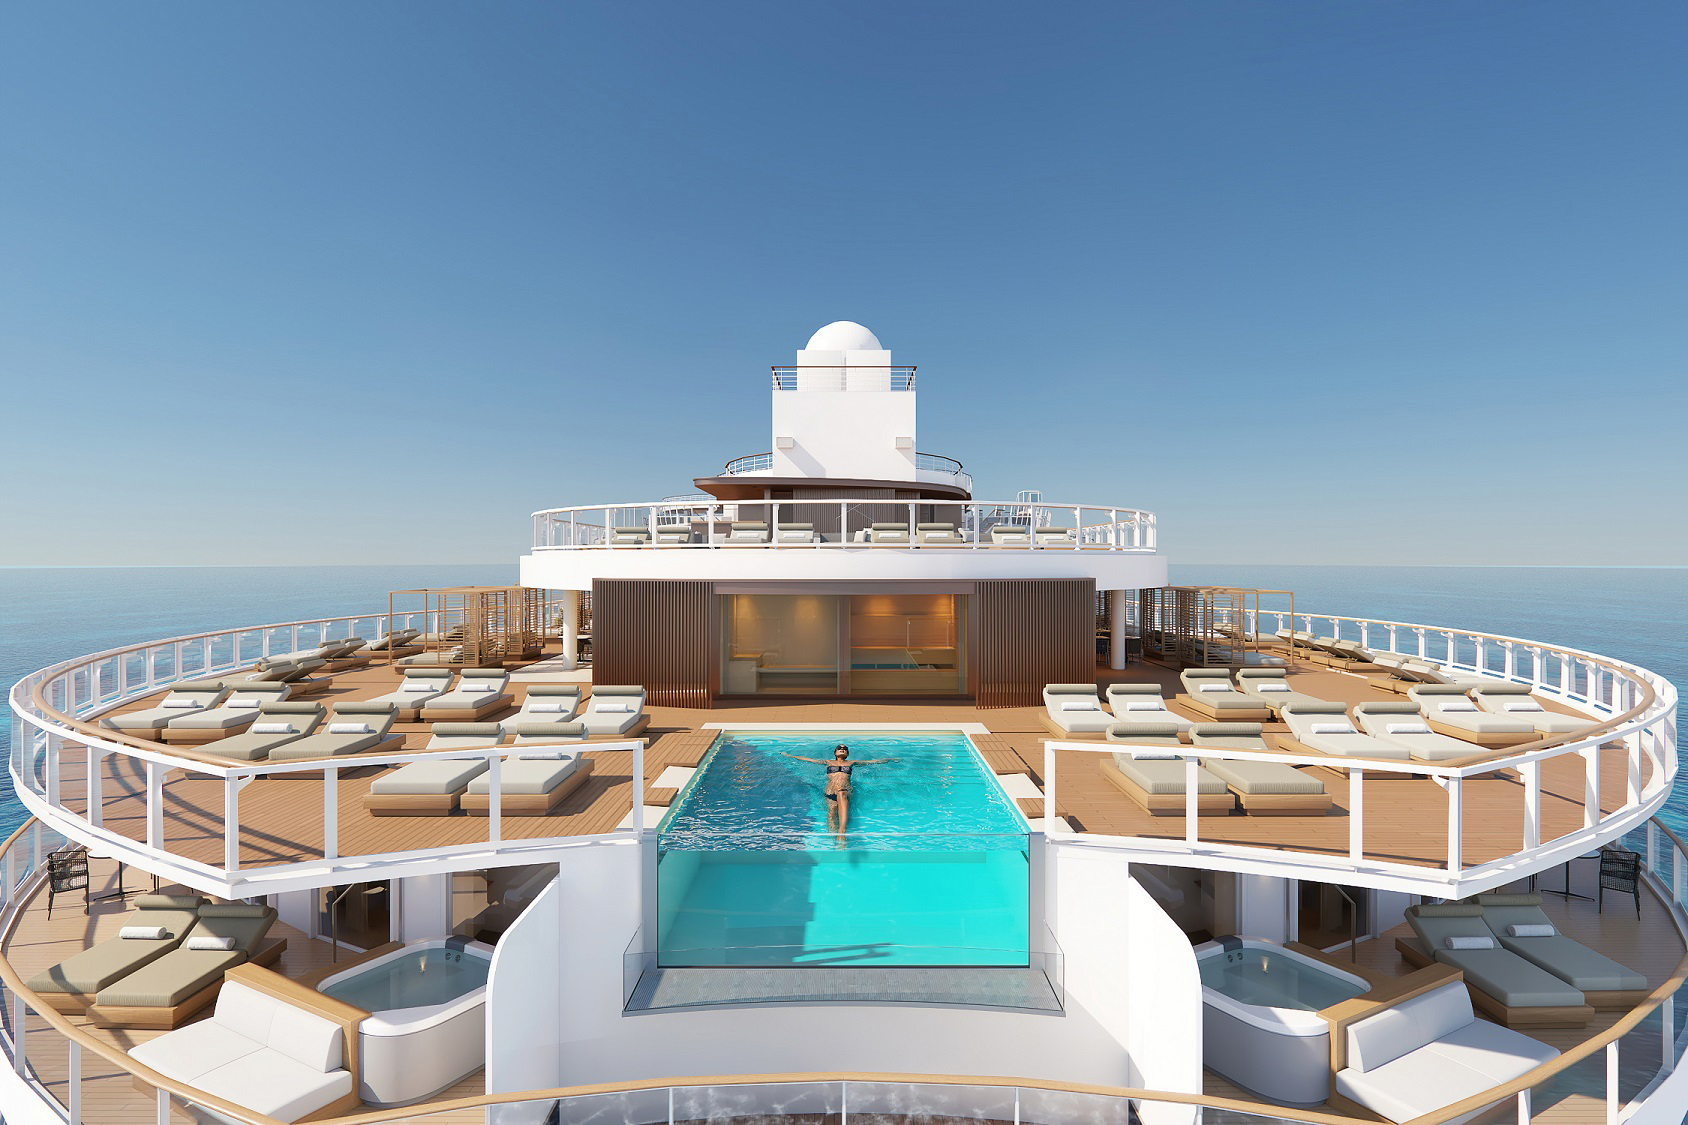 The Haven Sundeck on Norwegian Prima will boast a new infinity pool overlooking the ship's wake and a new outdoor spa with a glass-walled sauna and cold room.